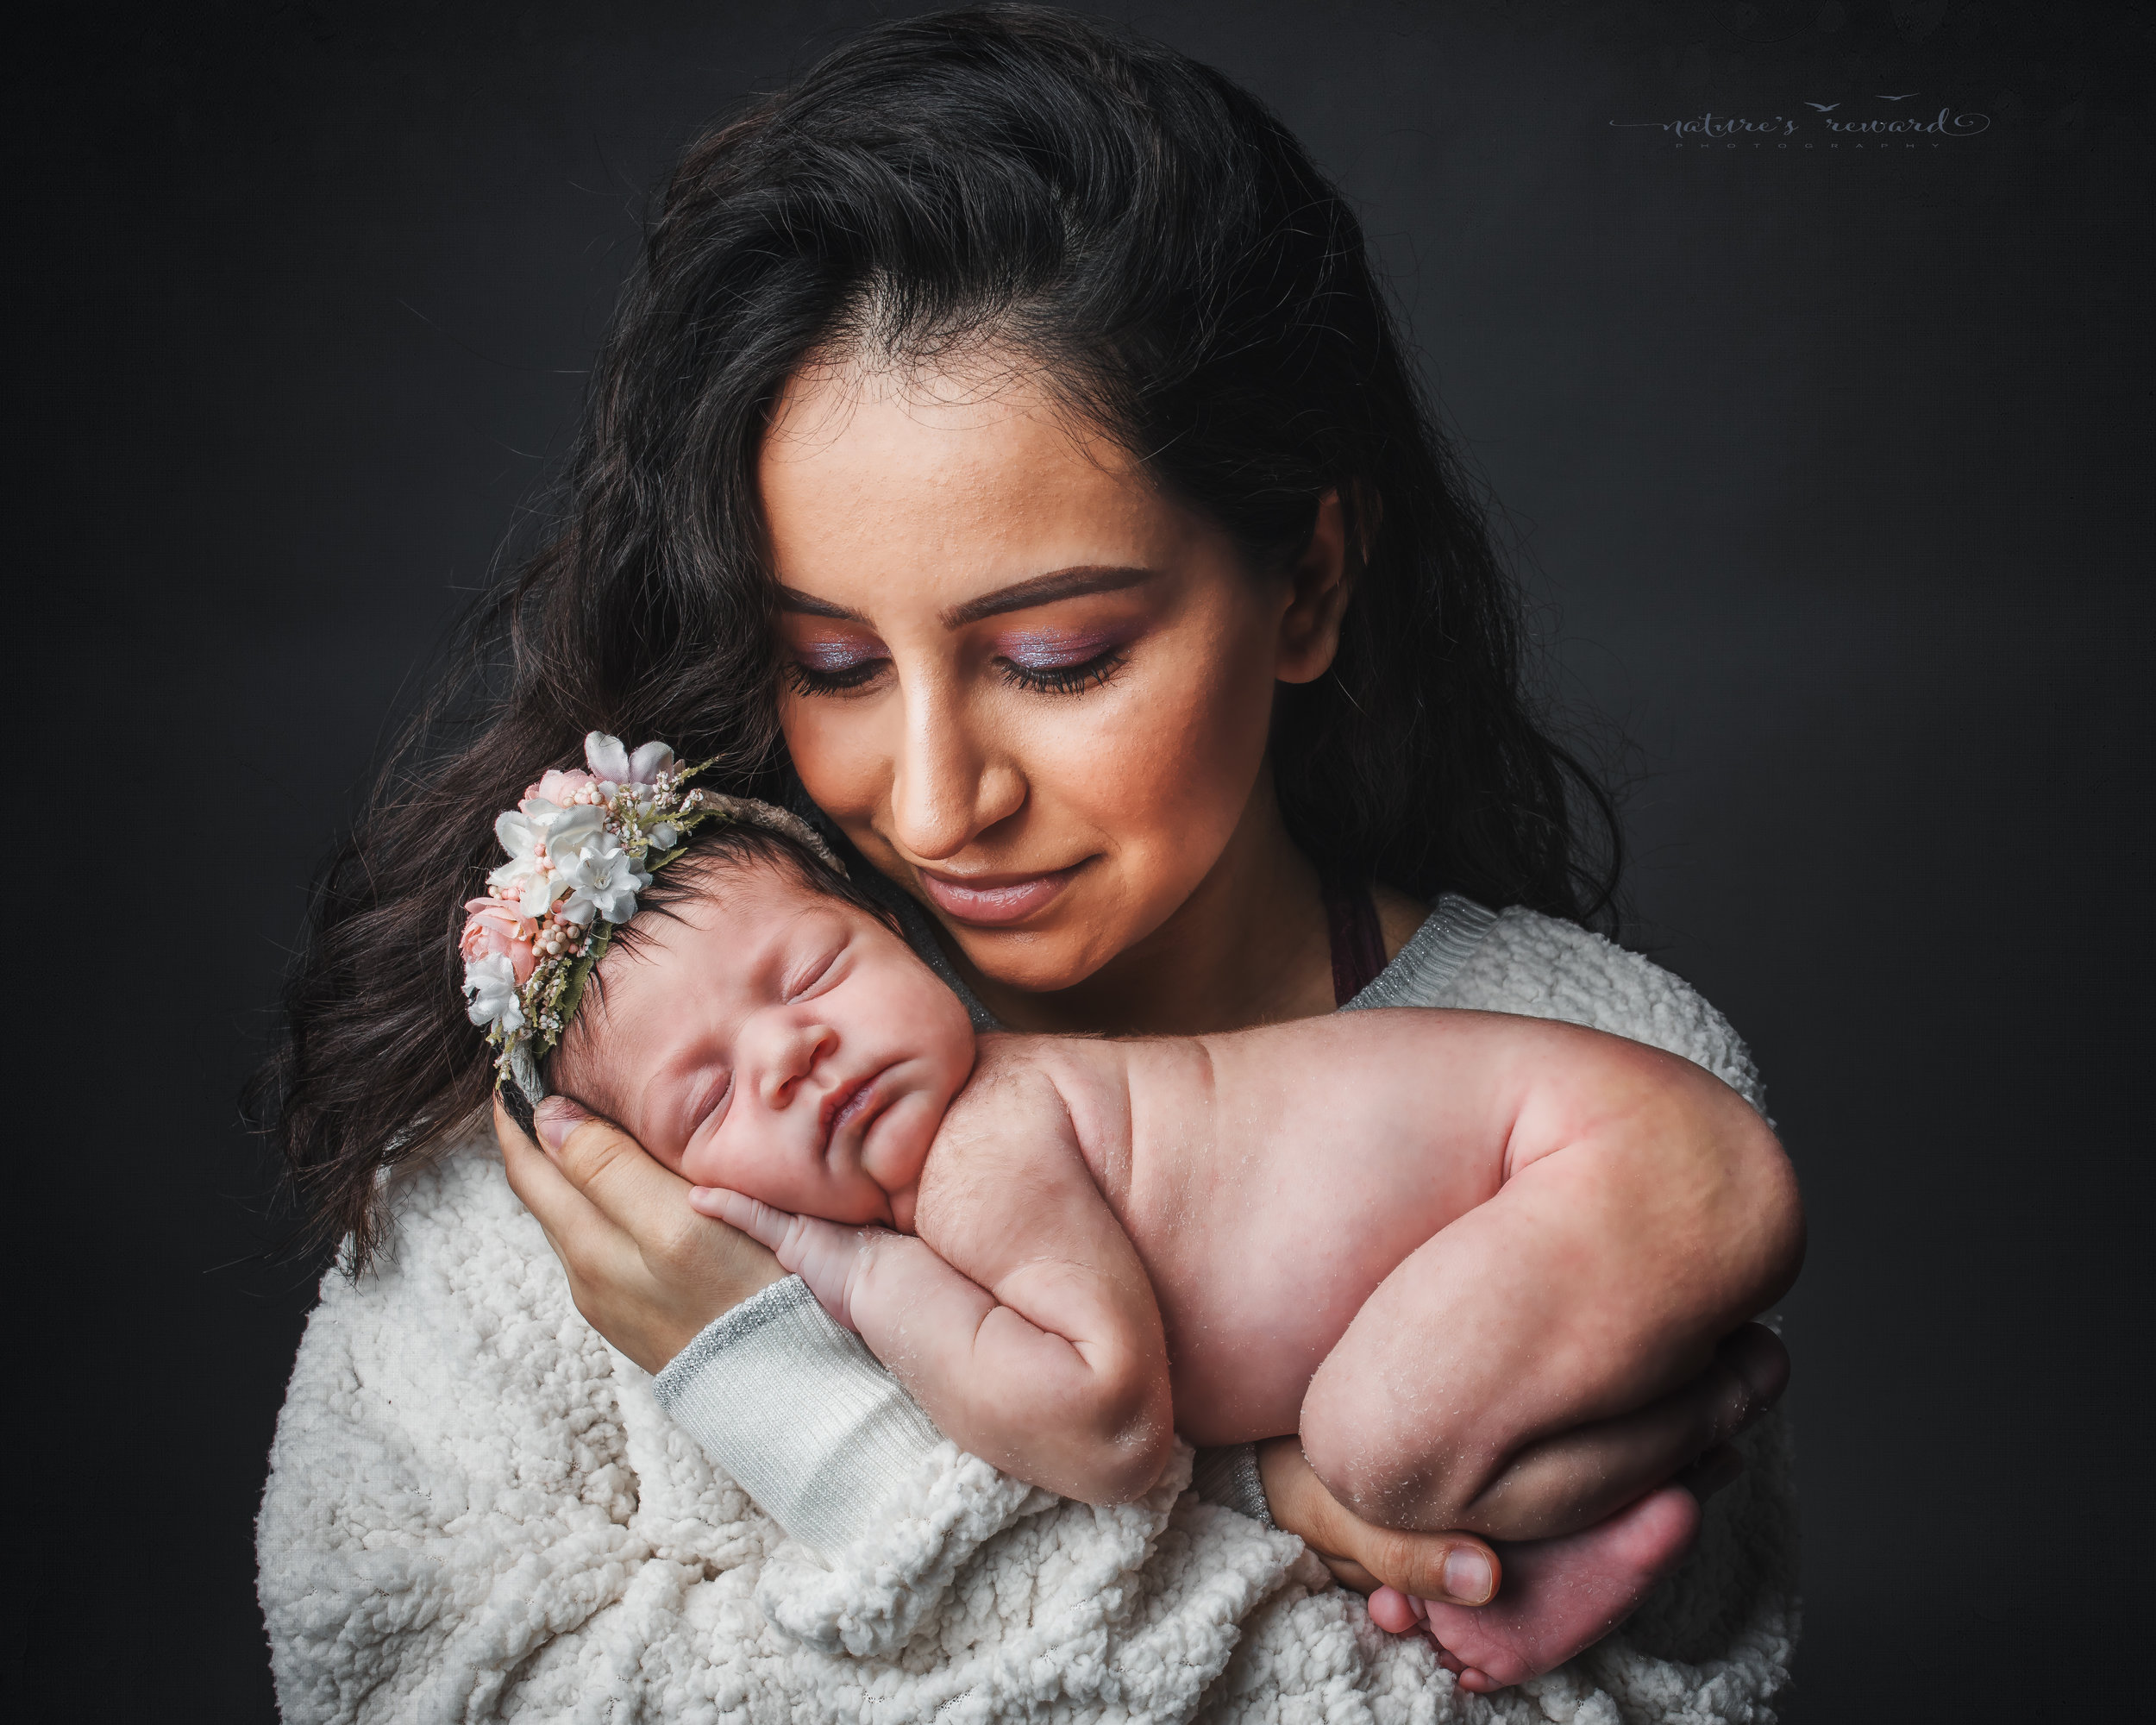 Mother and daughter portrait by nature's Reward Photography